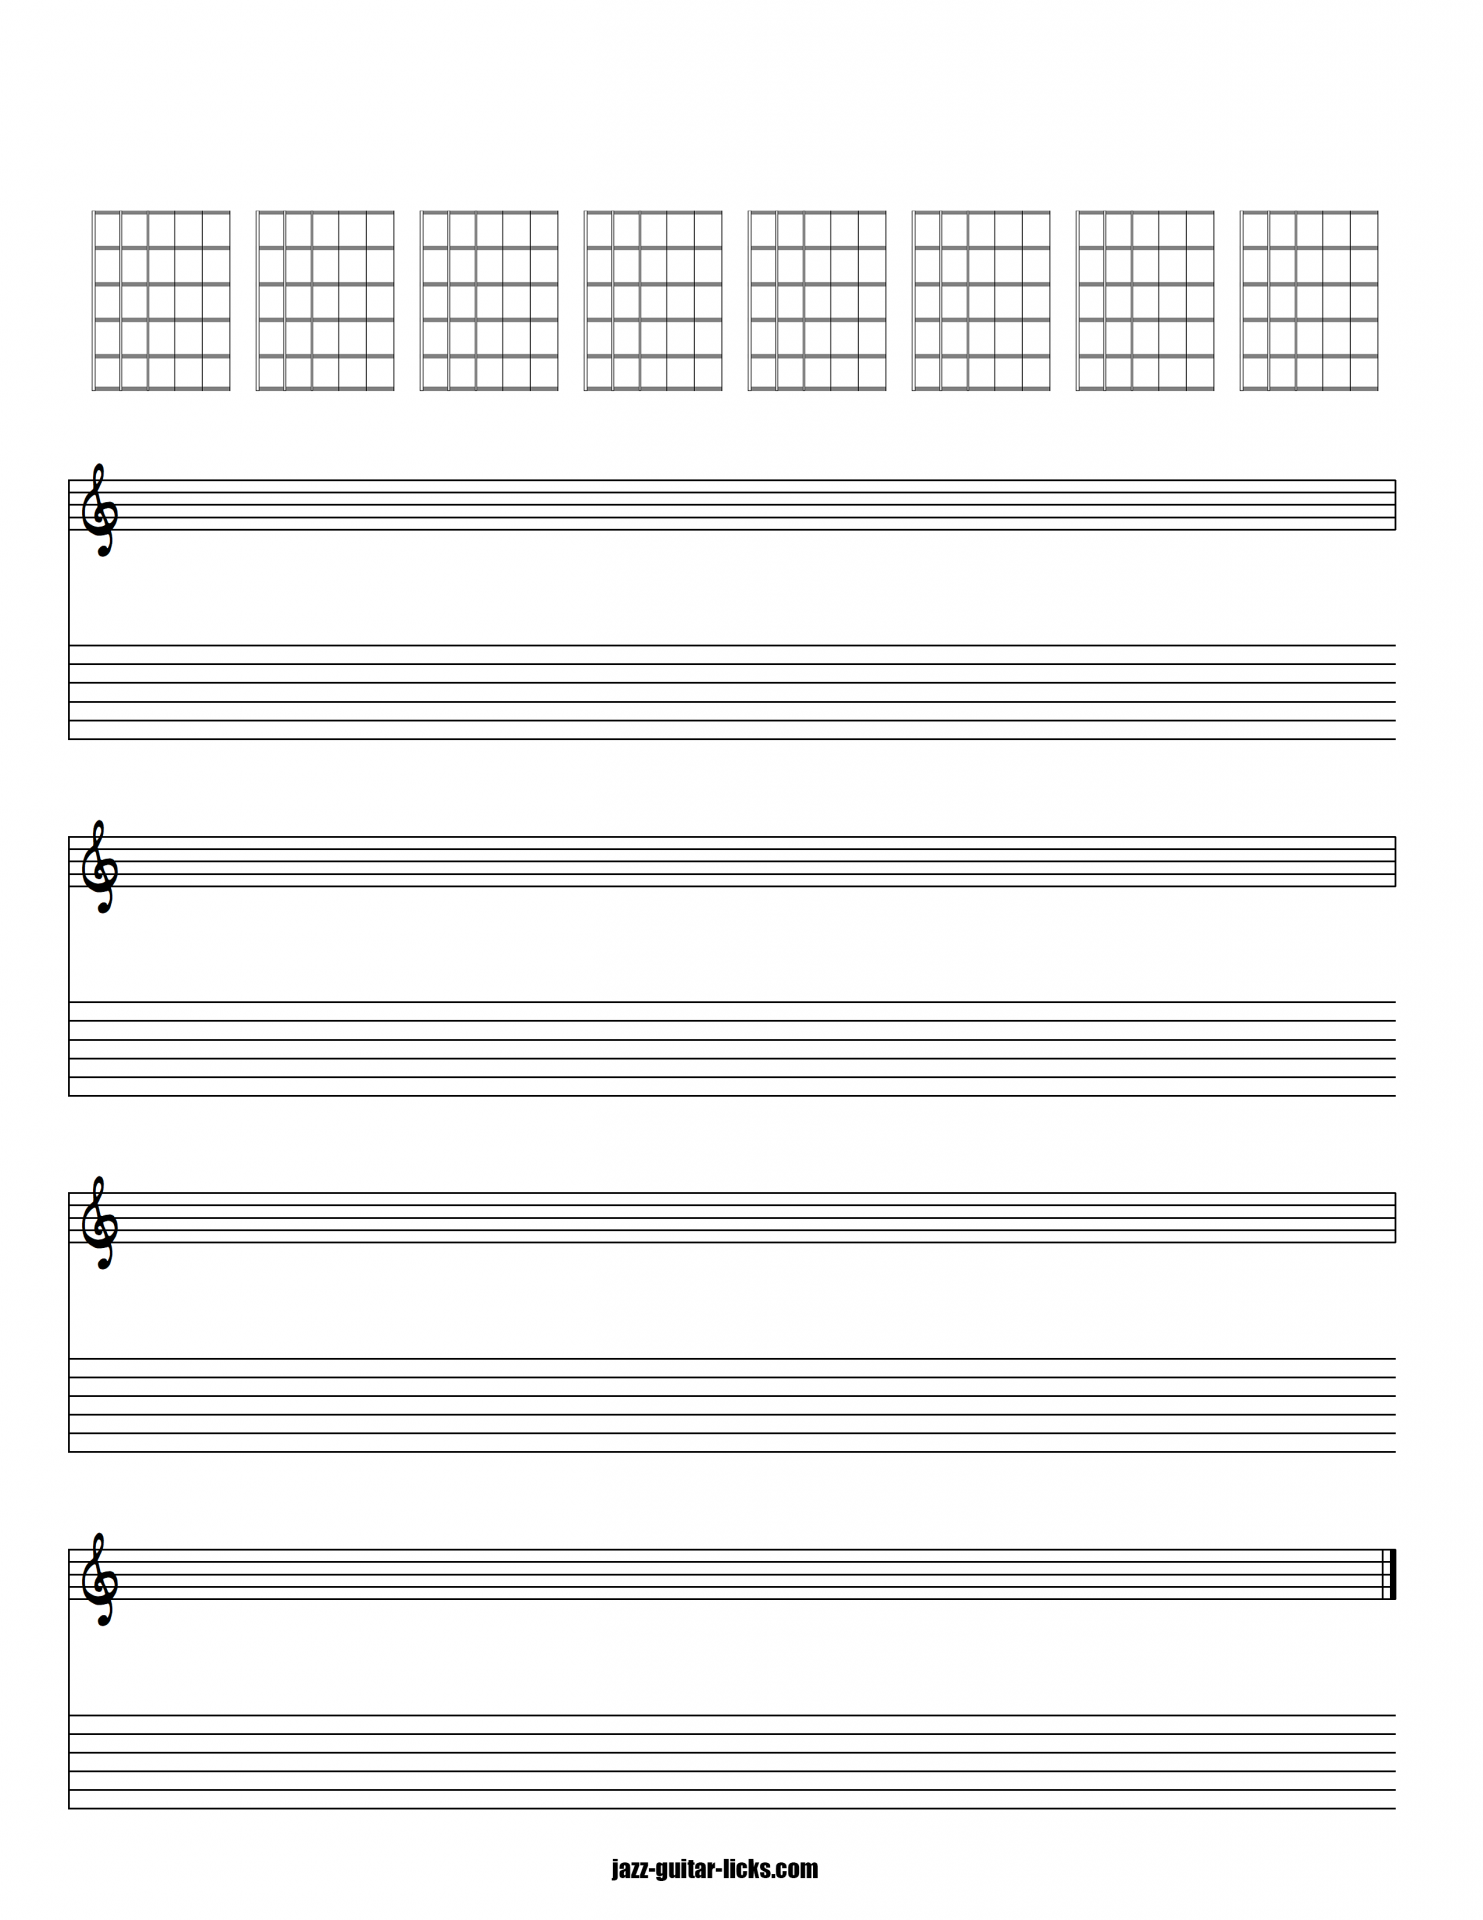 Blank guitar tab stave and chords